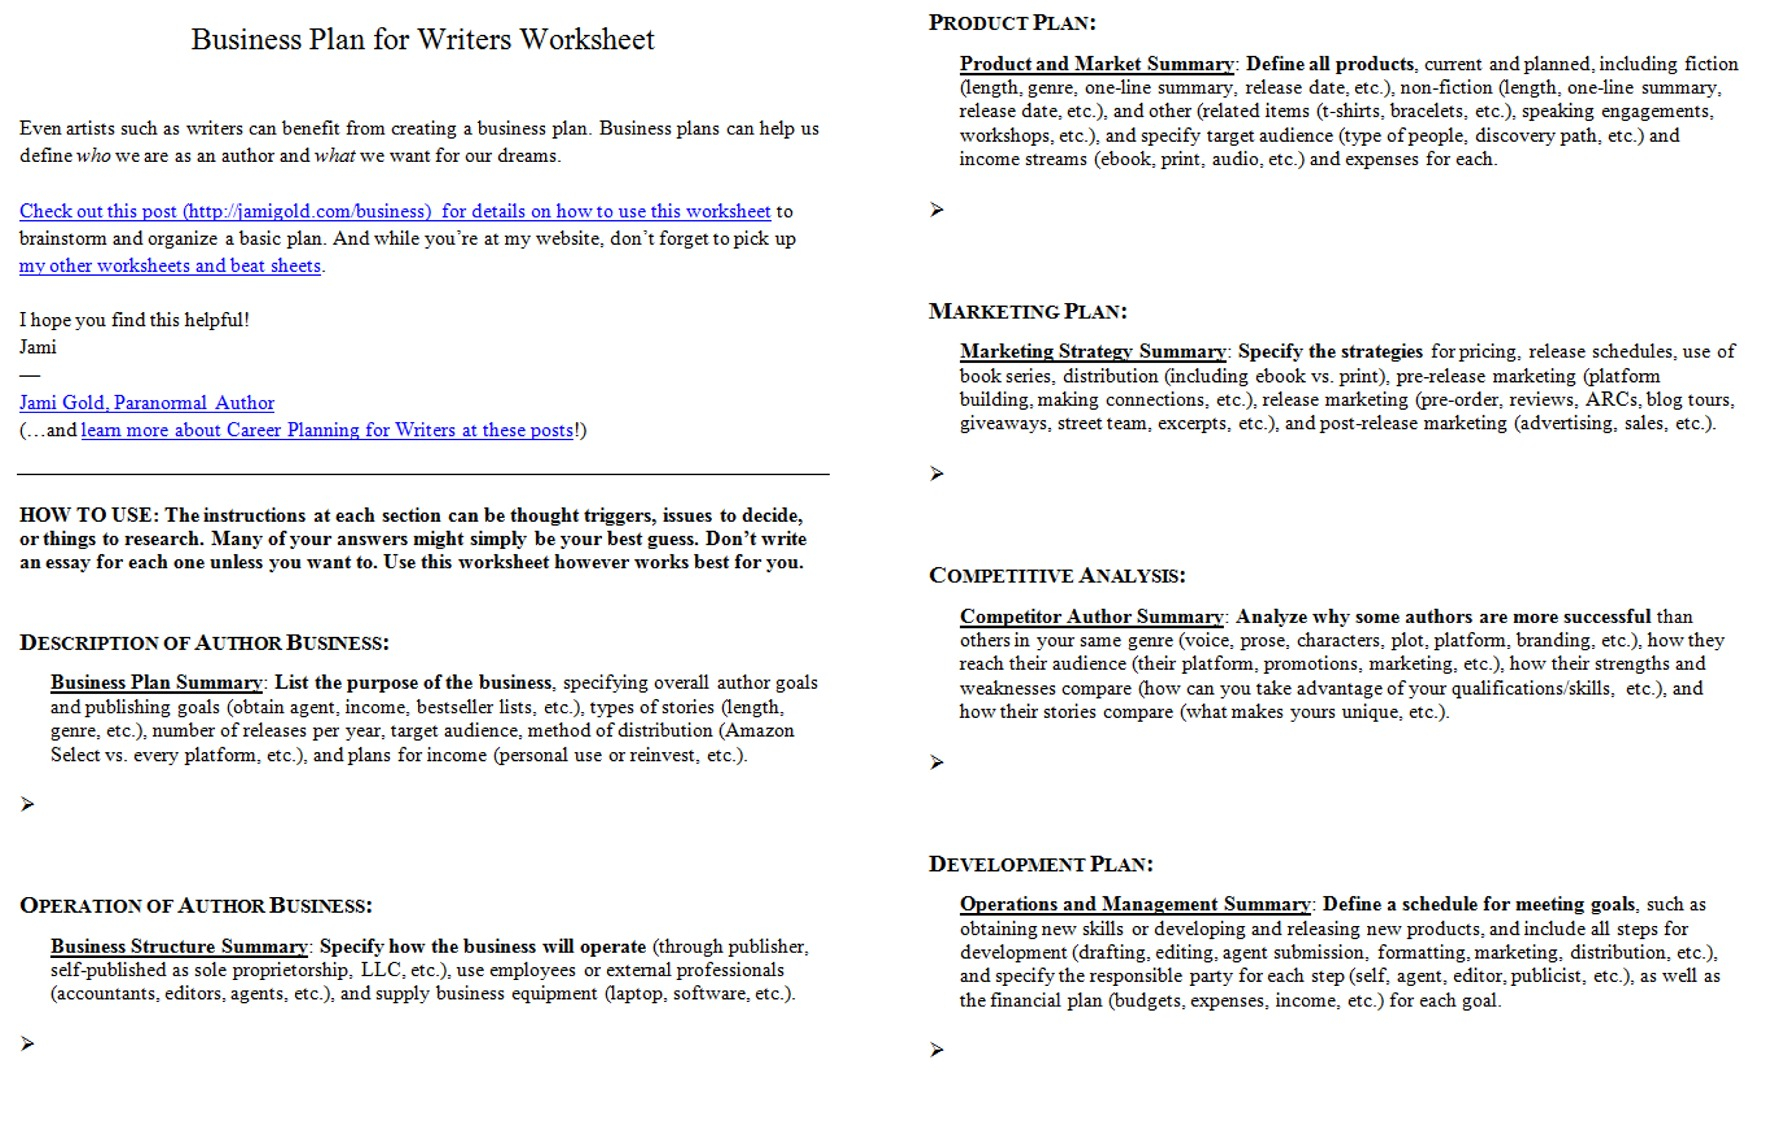 Aldiablosus  Pretty Worksheets For Writers  Jami Gold Paranormal Author With Luxury Screen Shot Of Both Pages Of The Business Plan For Writers Worksheet With Adorable Measurement Worksheet Also First Grade Phonics Worksheets In Addition Molarity Practice Worksheet Answers And Symbolism Worksheet As Well As Post Acute Withdrawal Syndrome Worksheet Additionally Restating The Question Worksheet From Jamigoldcom With Aldiablosus  Luxury Worksheets For Writers  Jami Gold Paranormal Author With Adorable Screen Shot Of Both Pages Of The Business Plan For Writers Worksheet And Pretty Measurement Worksheet Also First Grade Phonics Worksheets In Addition Molarity Practice Worksheet Answers From Jamigoldcom